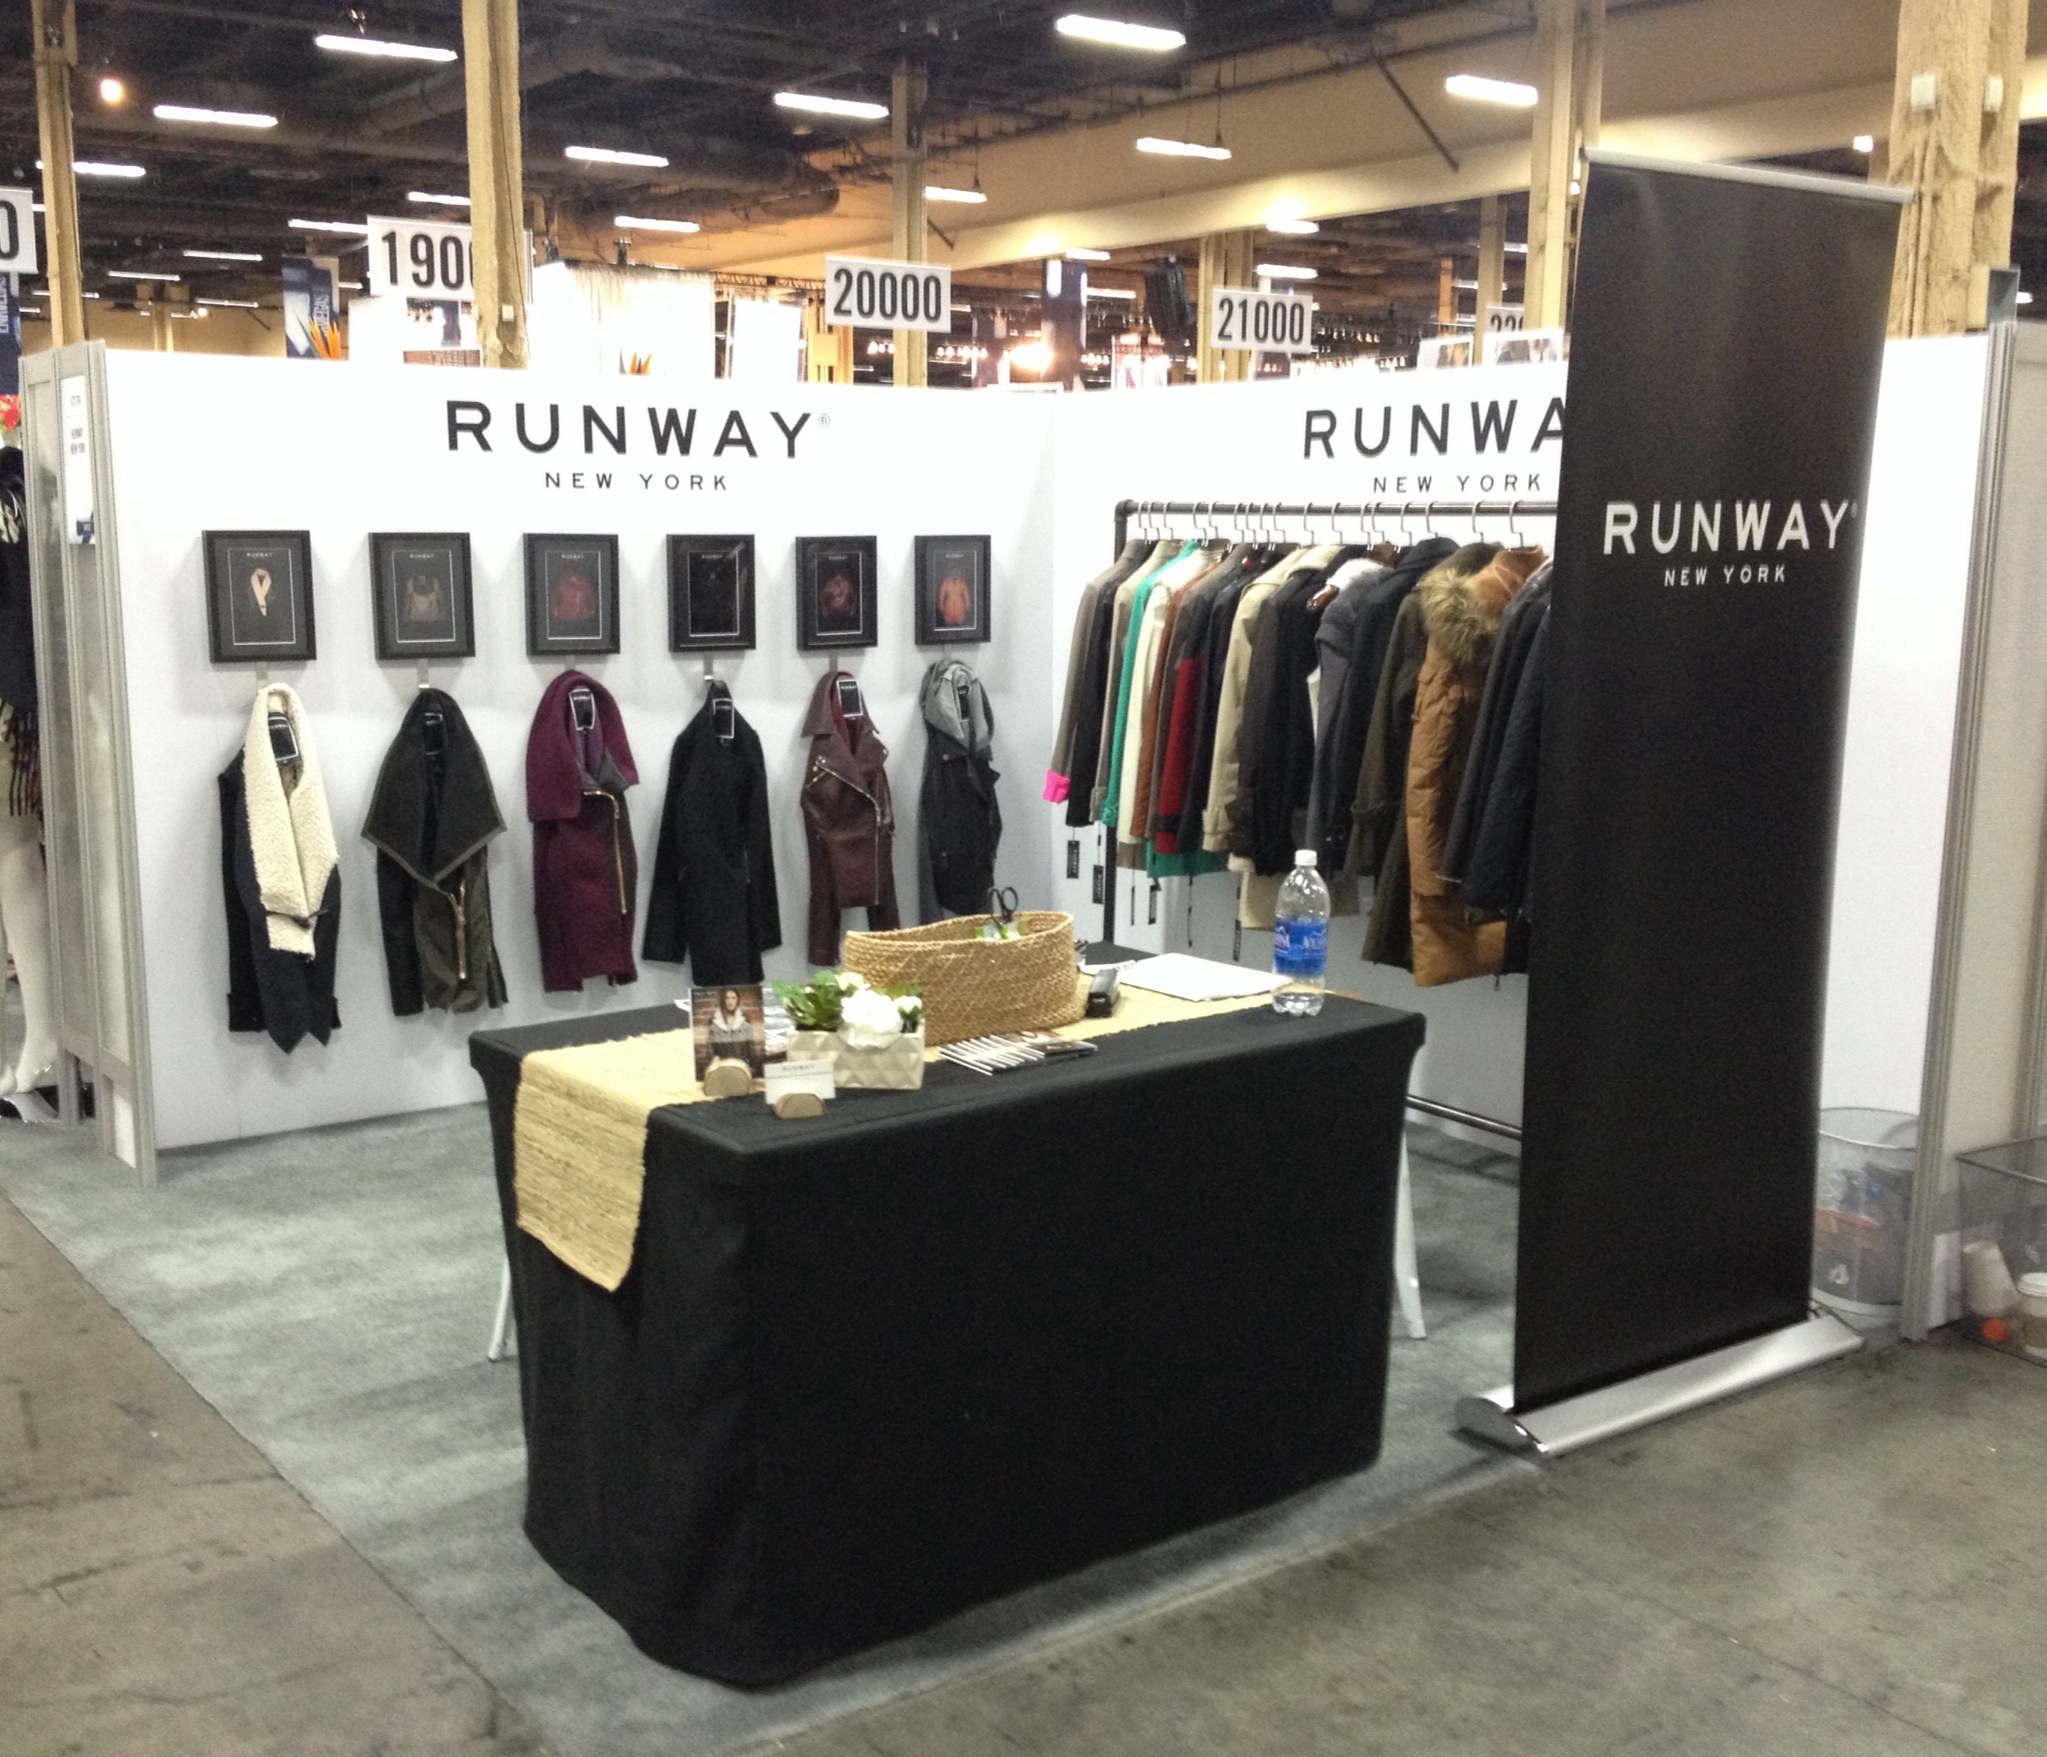 runway new york trade show booth display